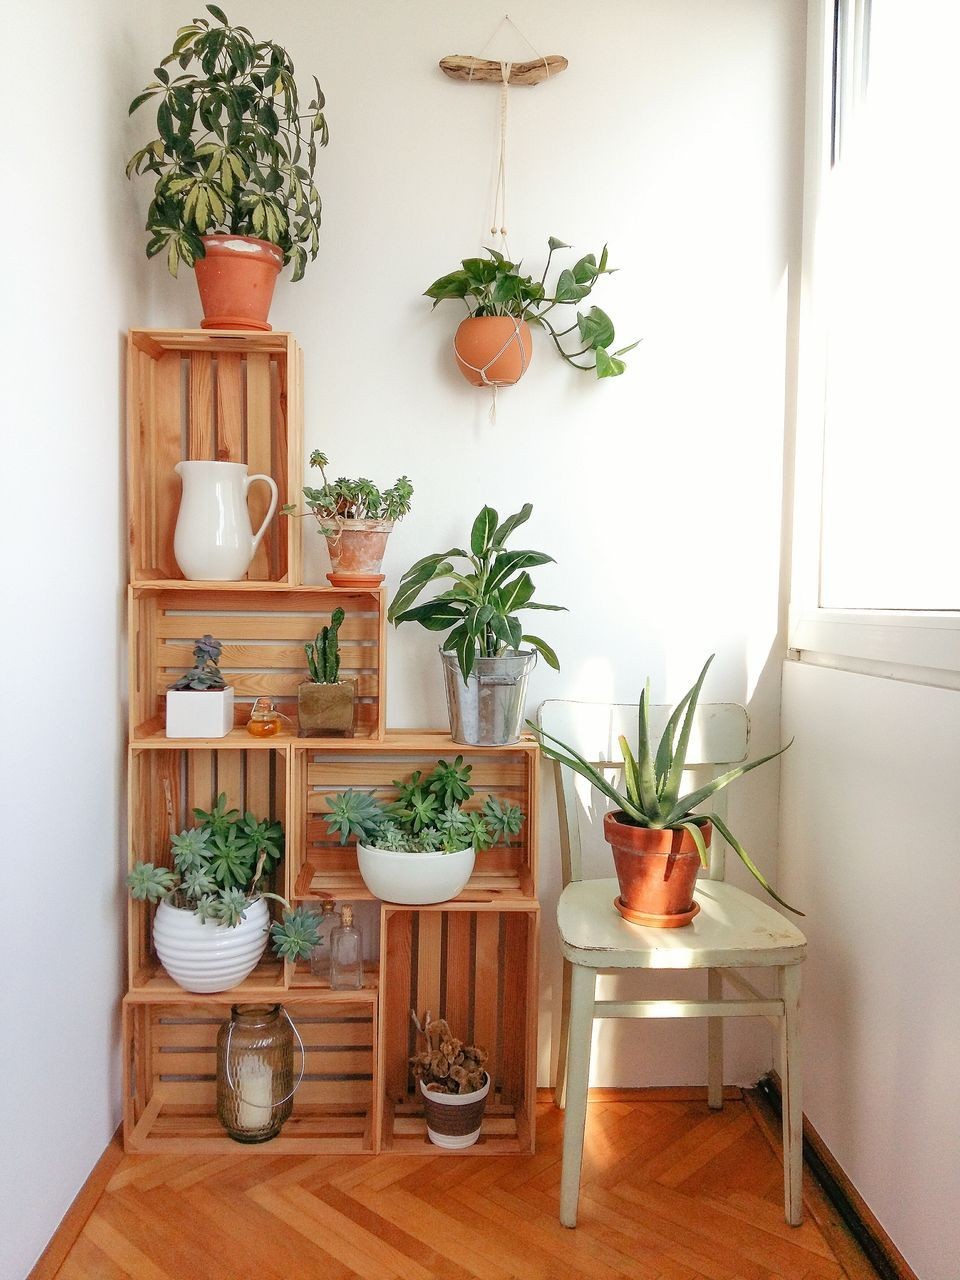 Cool Plant Stand Design Ideas for Indoor Houseplants ... on Hanging Plants Stand Design  id=73906